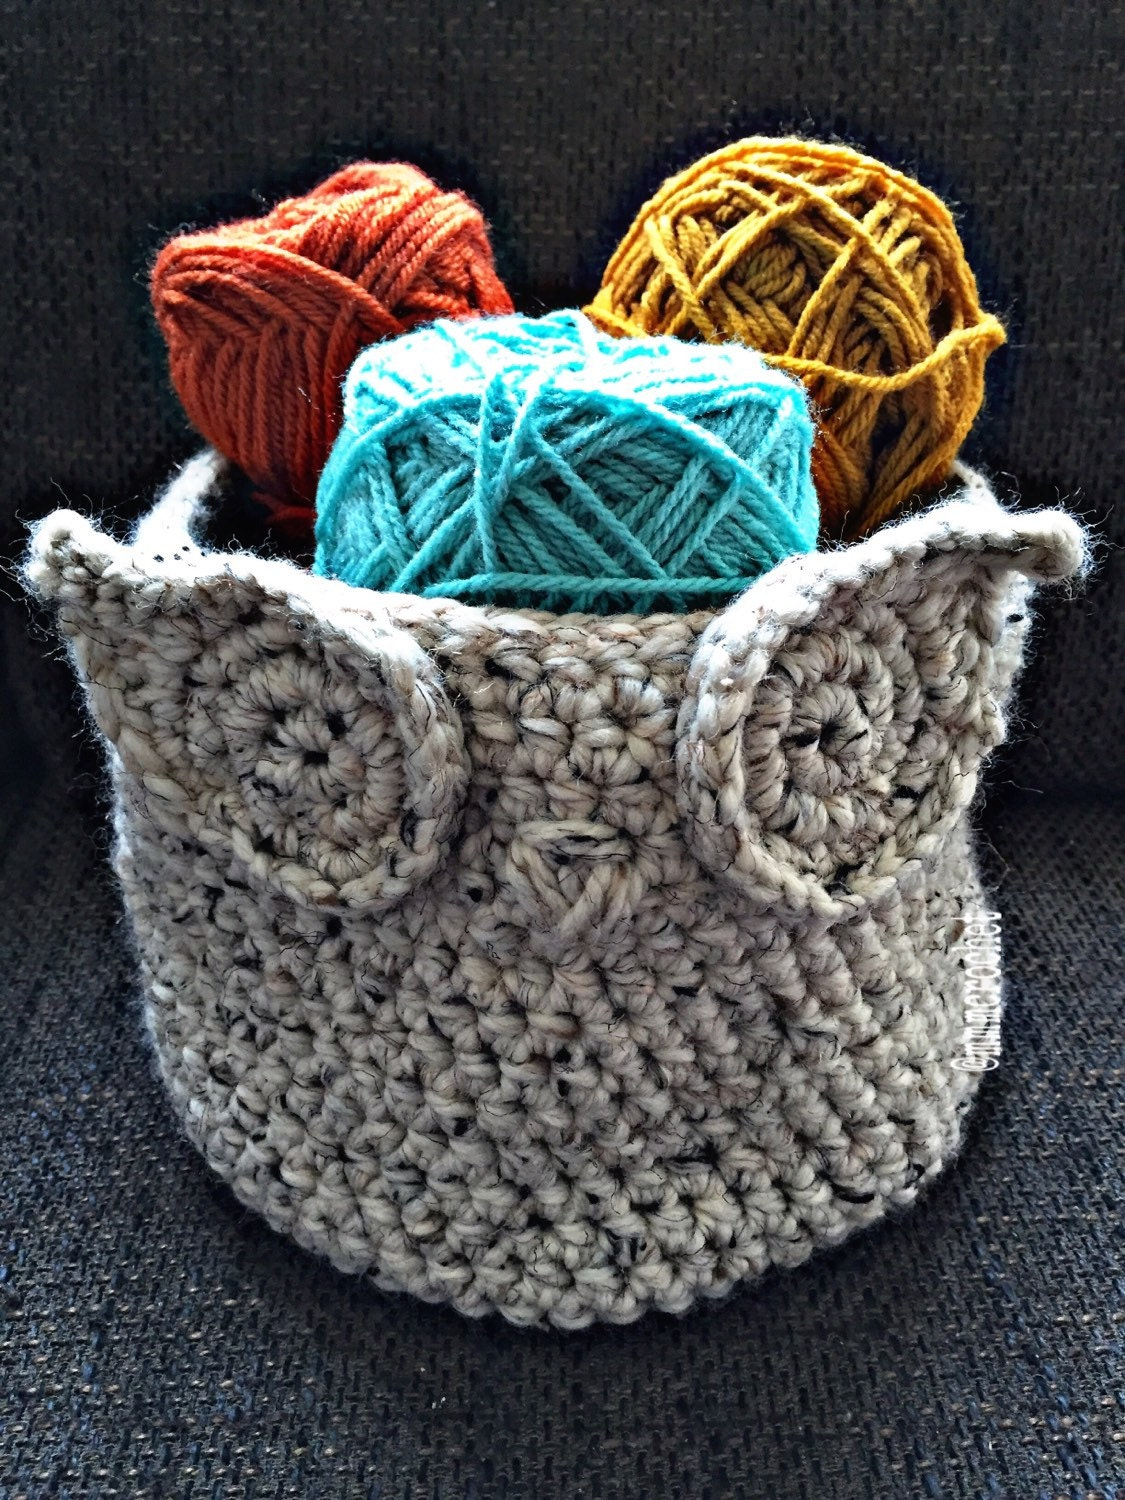 Free Crochet Patterns Owl Basket : handcrafted crochet owl basket